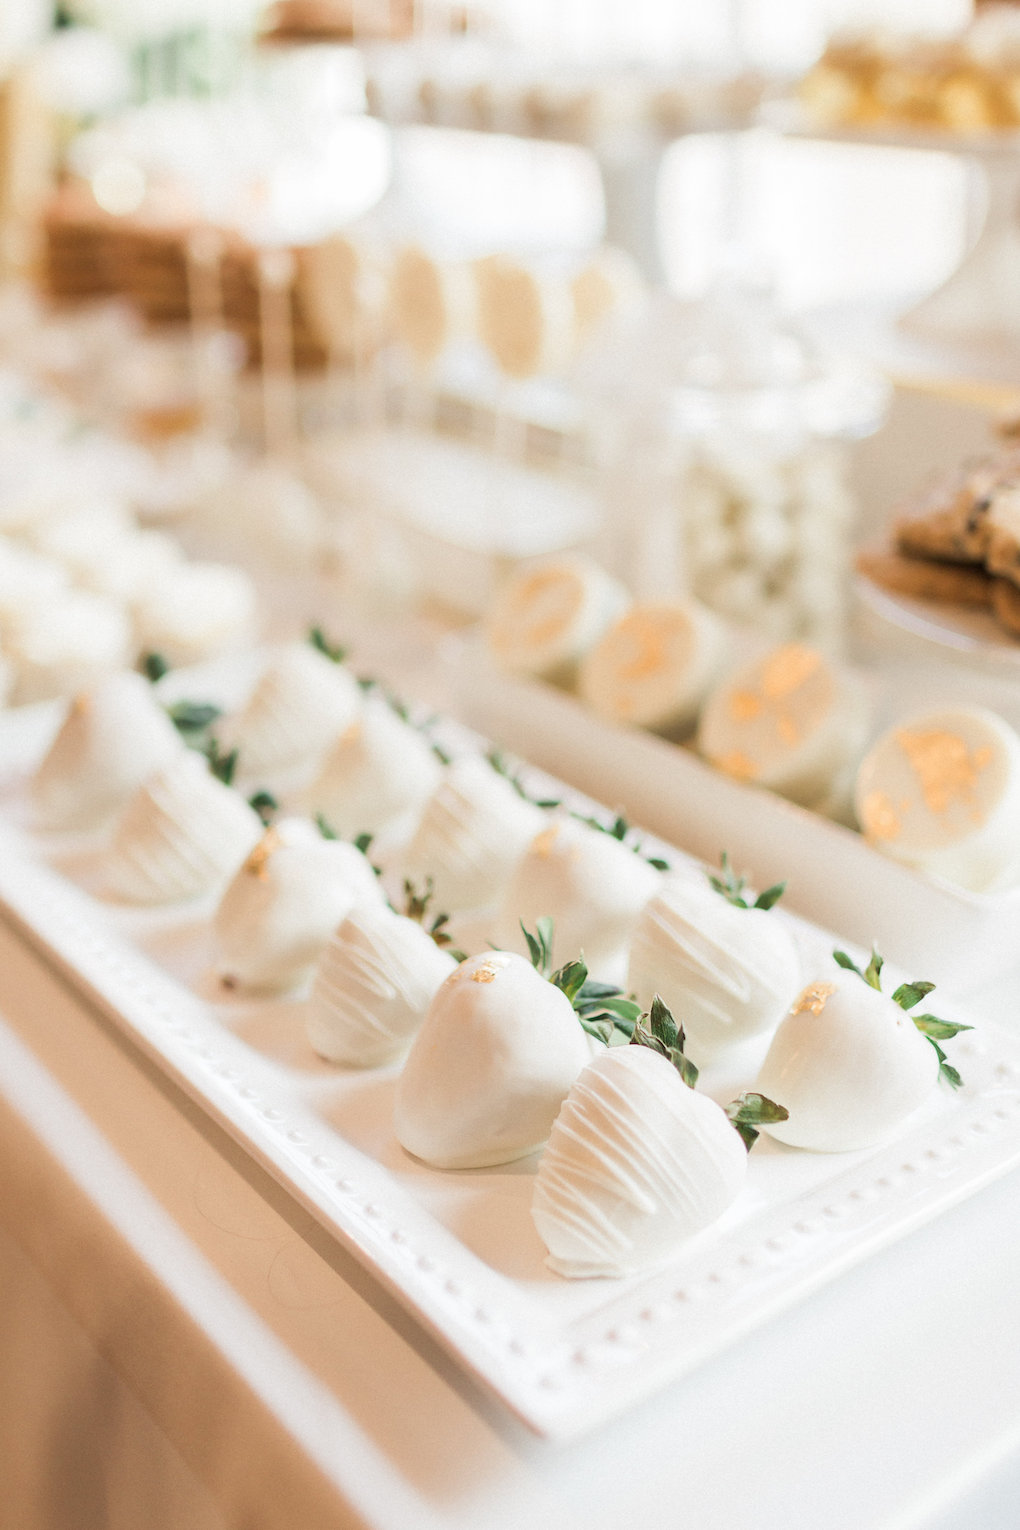 White chocolate covered strawberries for chic wedding in Buffalo, NY planned by Exhale Events. Find more timeless wedding inspiration at exhale-events.com!